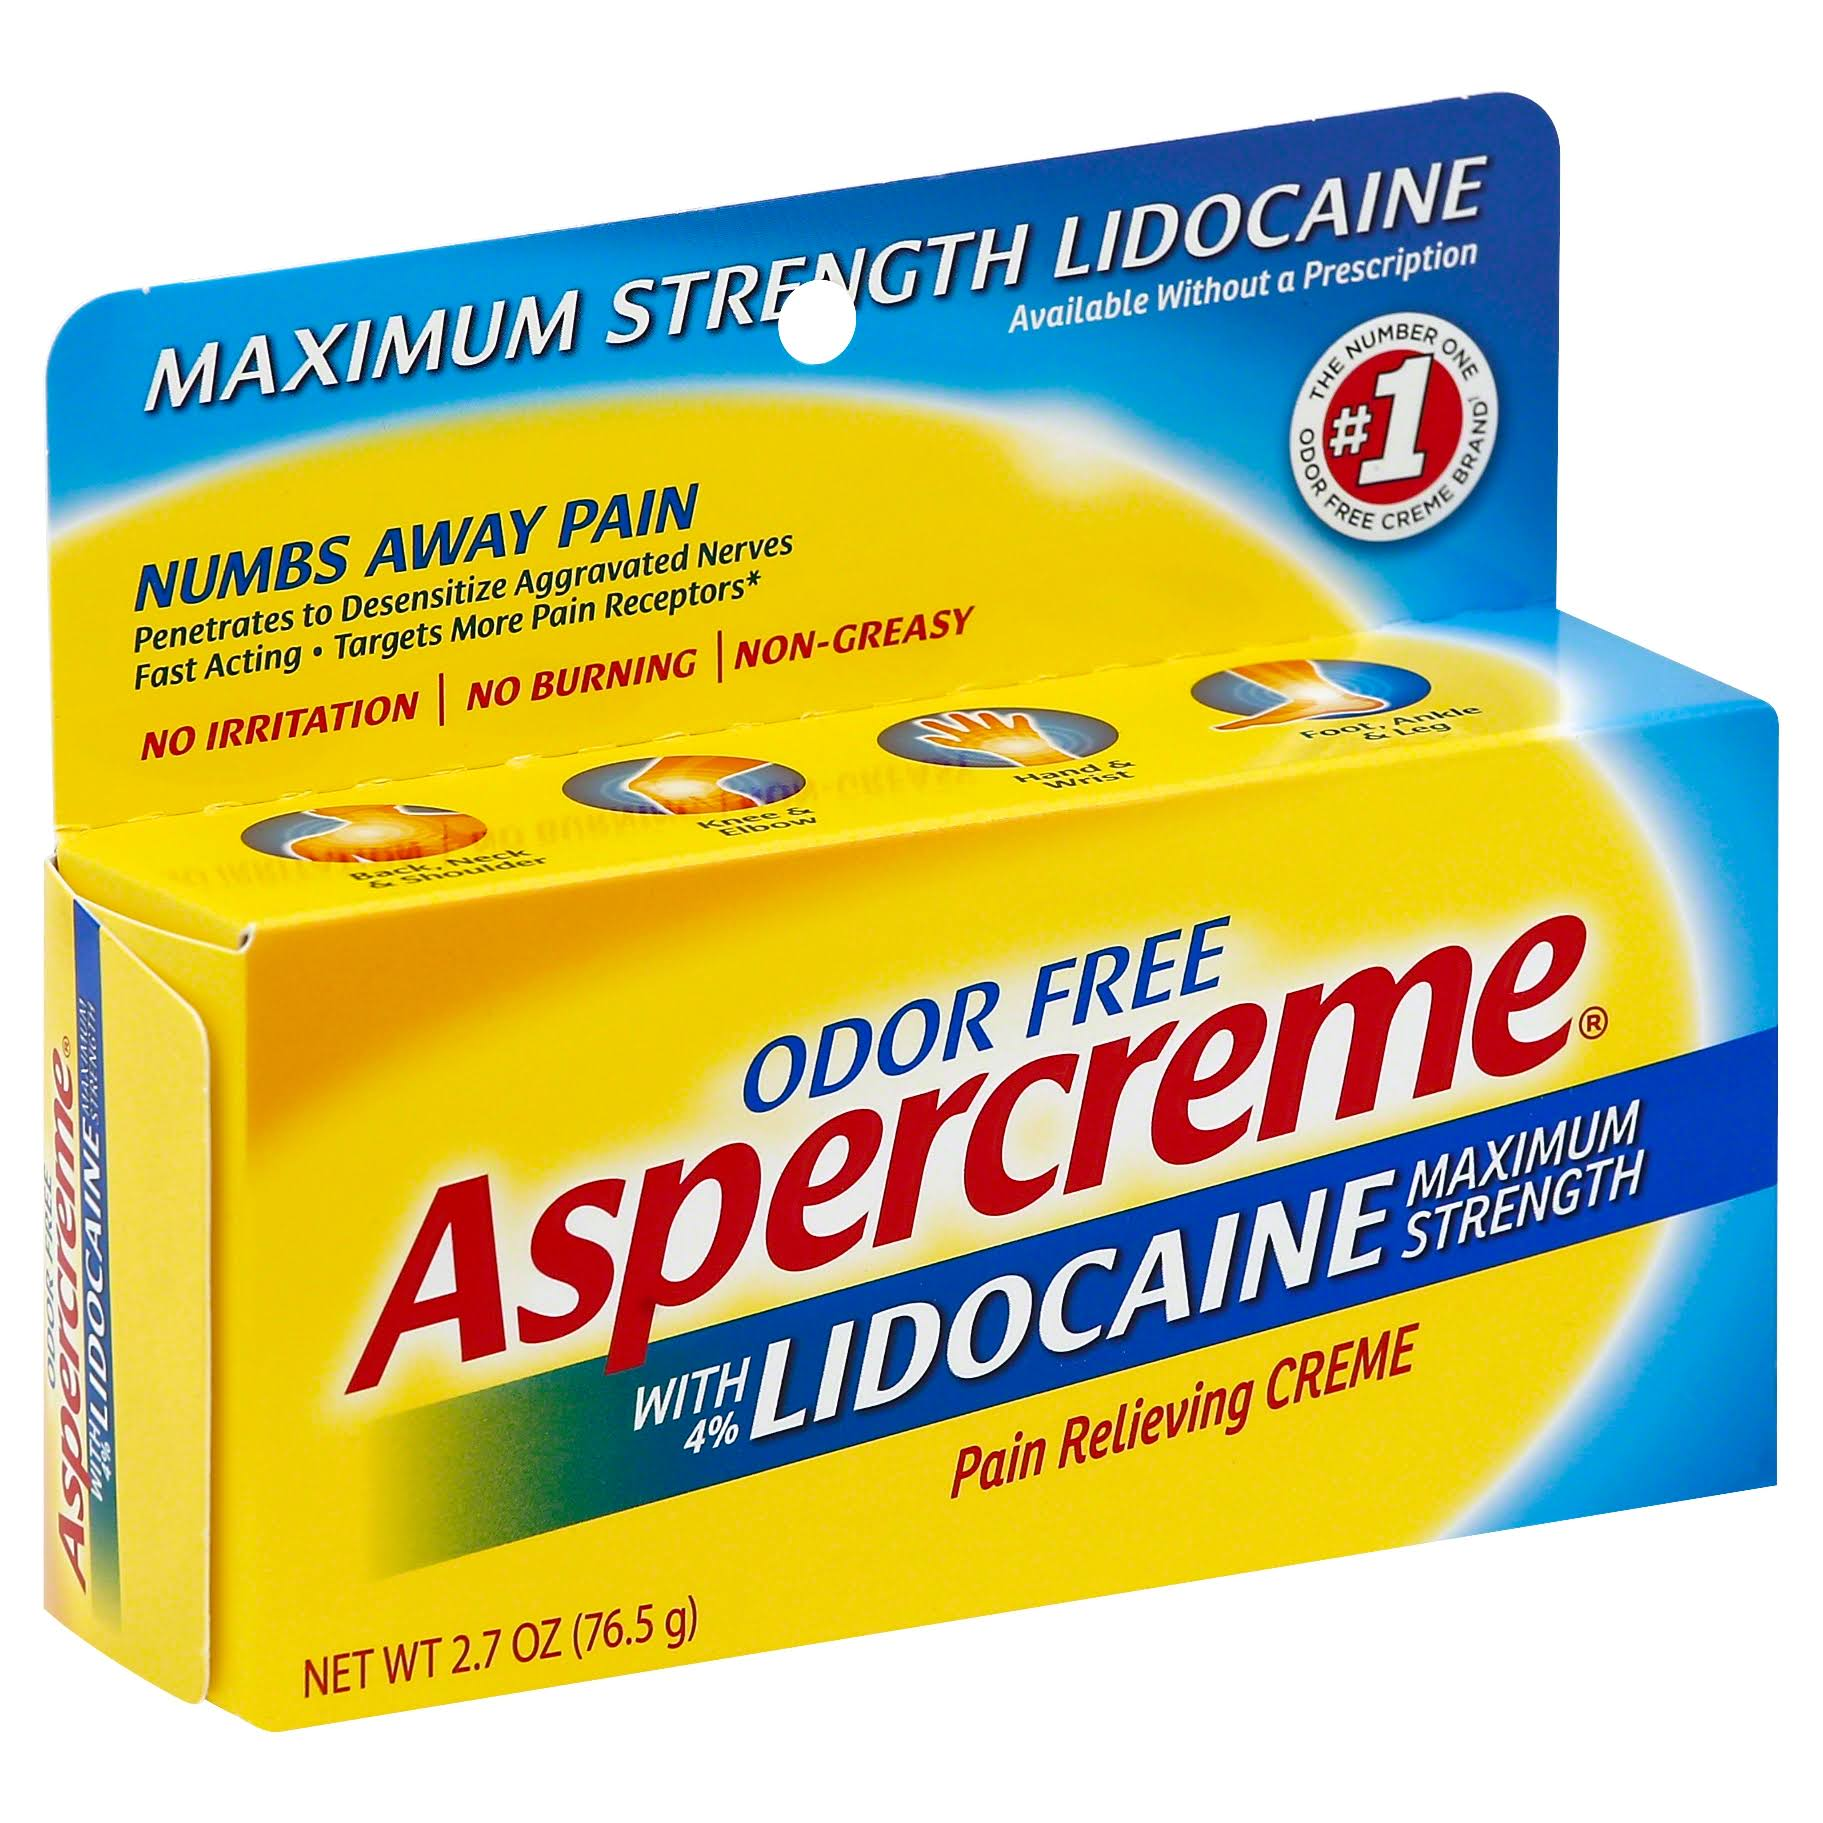 Aspercreme Pain Relieving Creme - Maximum Strength, 2.7oz